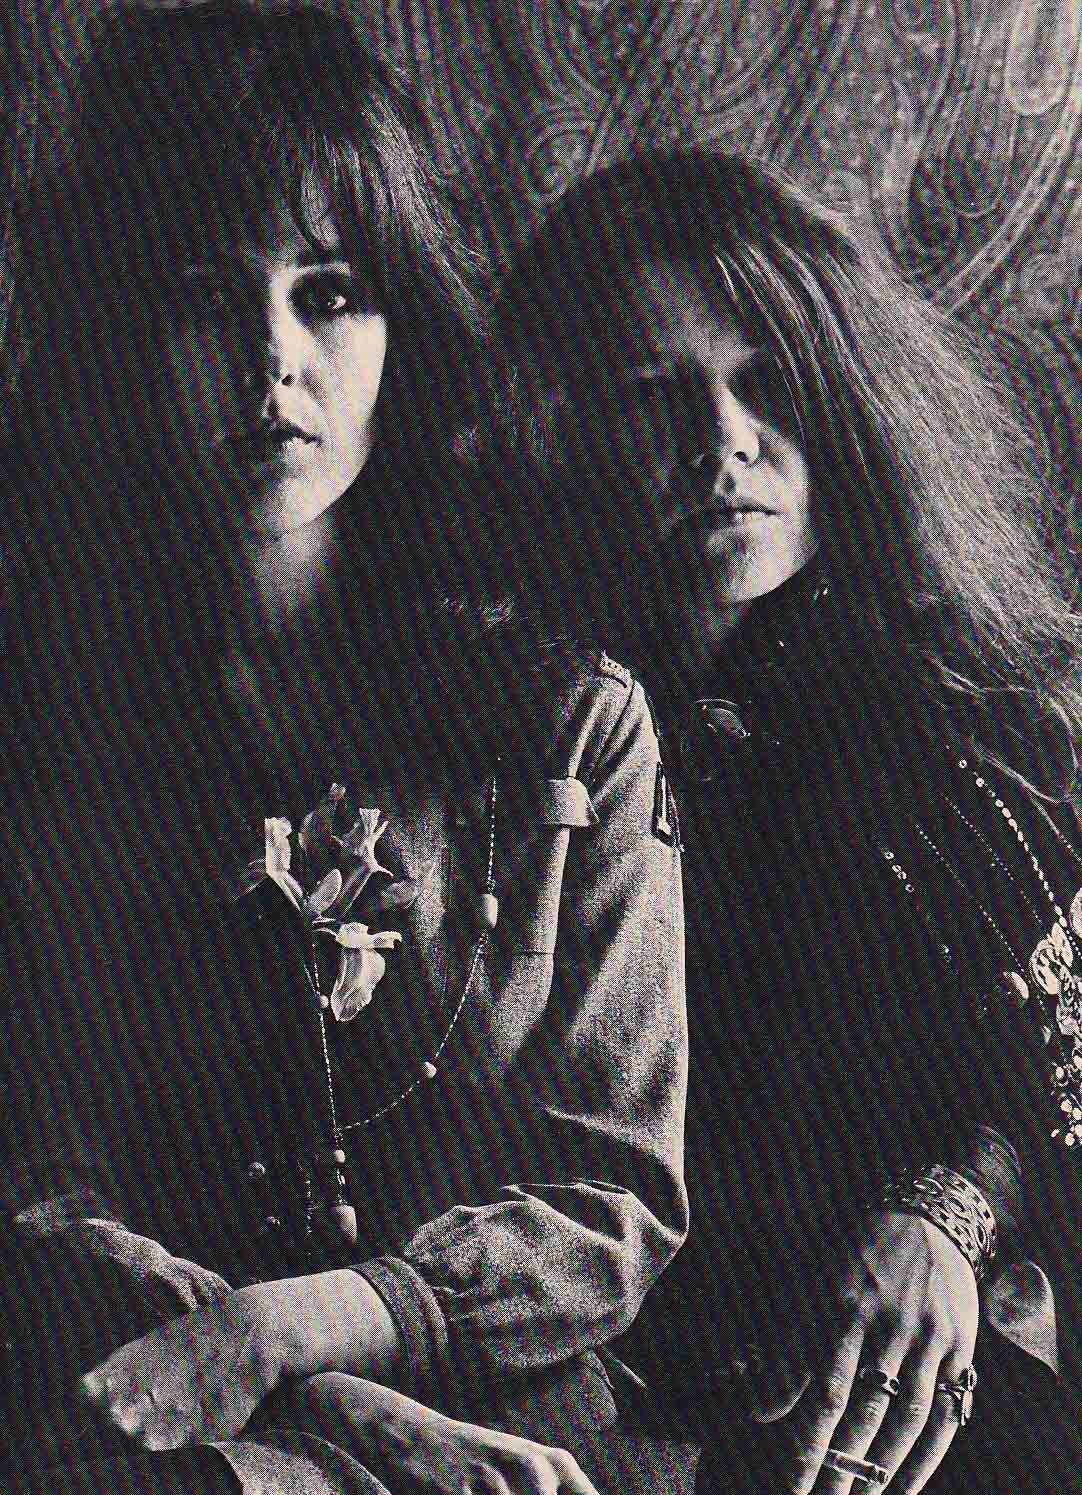 And of course Janis Joplin